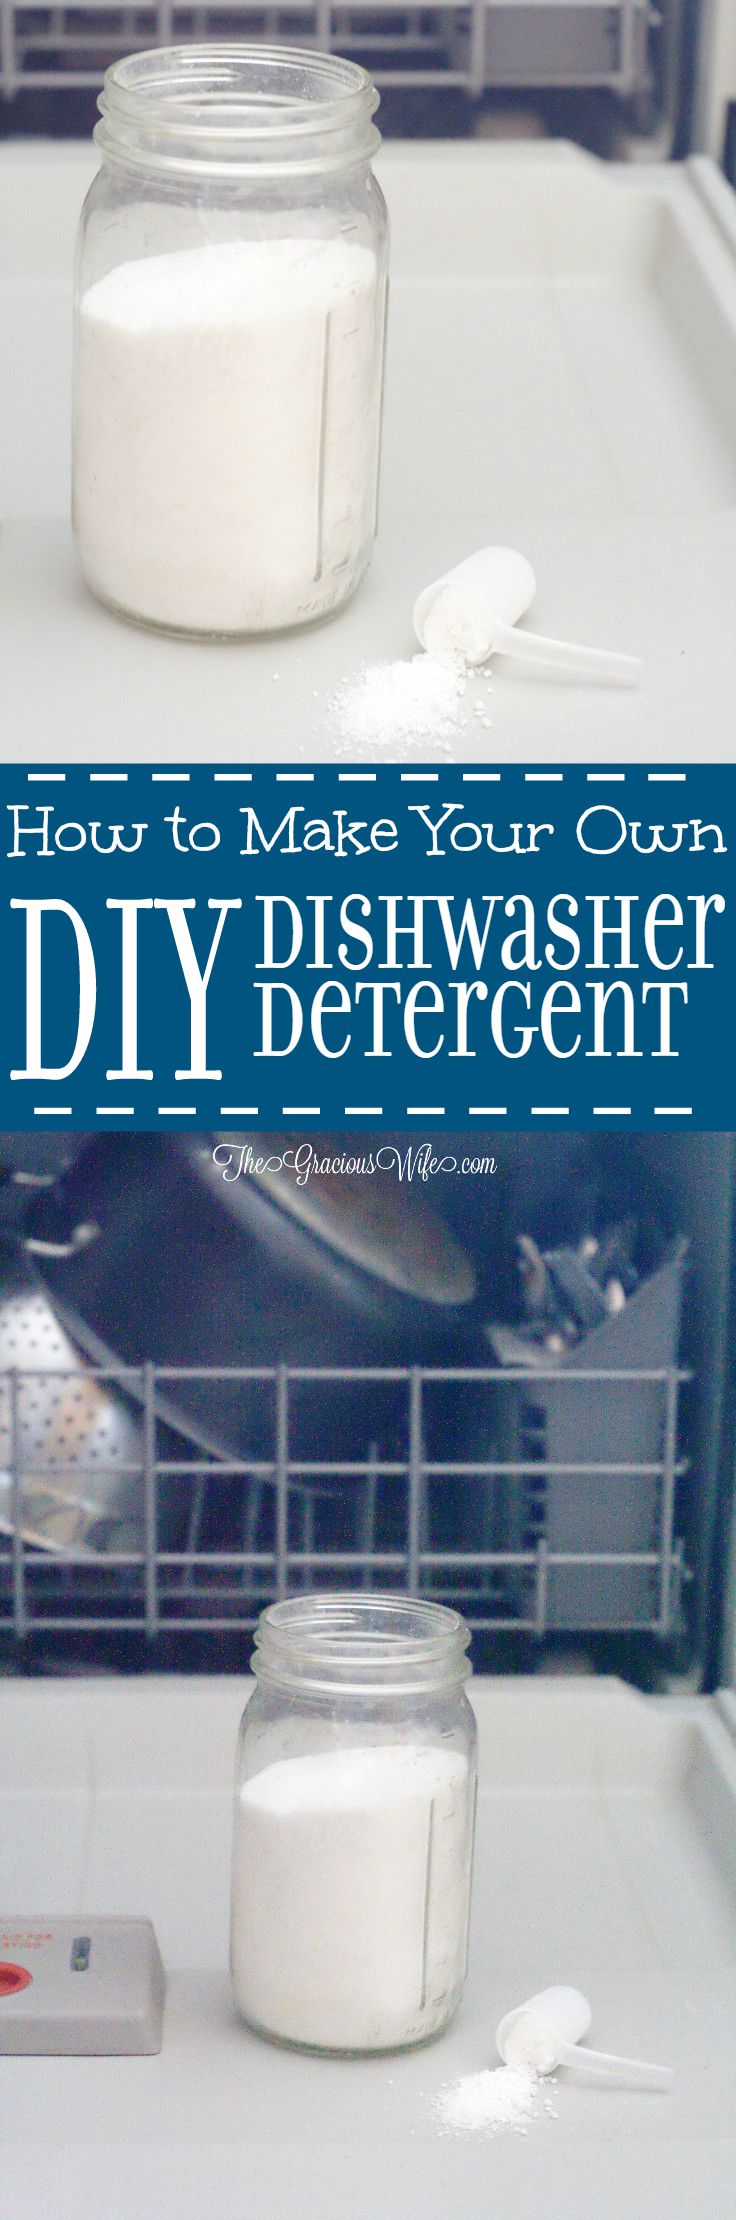 Homemade Dishwasher Detergent - an easy DIY cleaning product.  Super easy to make and works great! It's the only dish detergent I use!